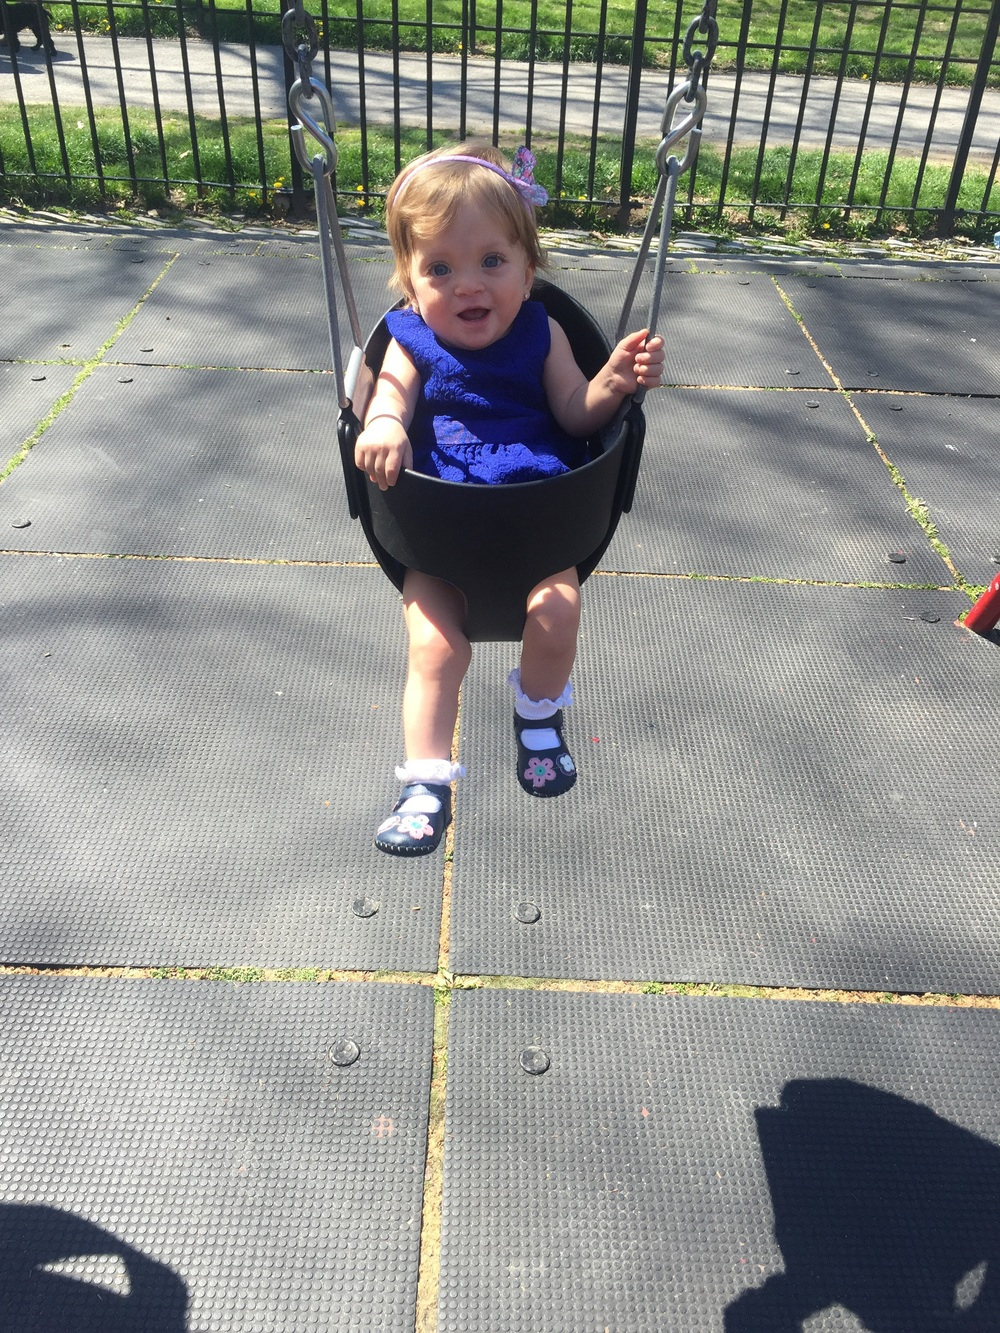 On the swings for the first time ever - at the playground at the 97th Street Entrance to Central Park